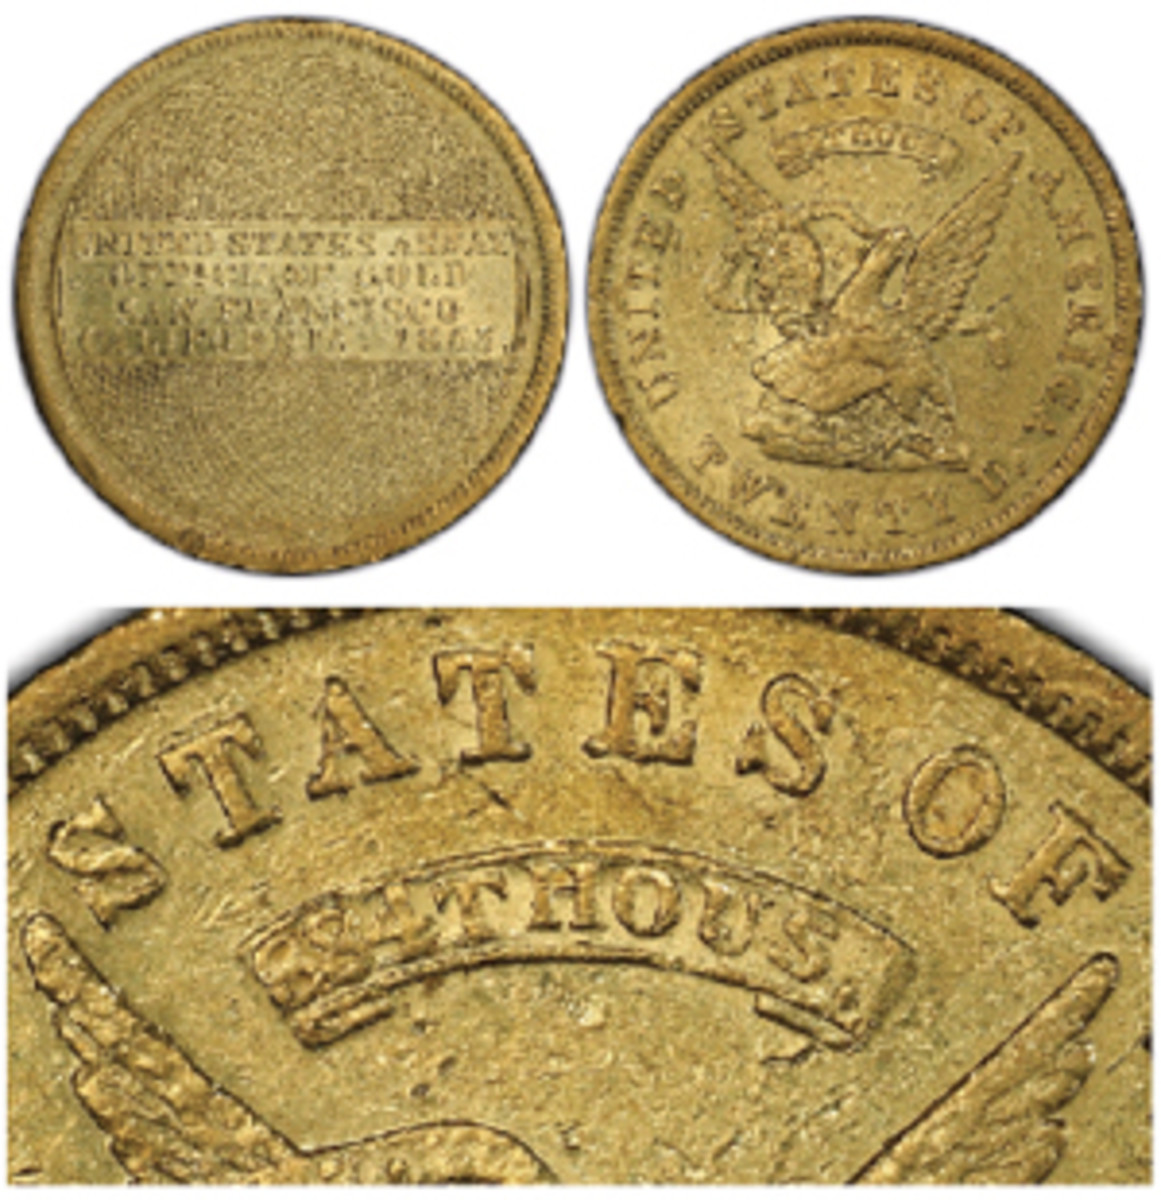 """This rare 884 THOUS variety 1853 U.S. Assay Office $20, graded PCGS AU-55+, is one of the Territorial gold coins recovered from the """"SS Central America."""" (Images from Professional Coin Grading Service www.PCGS.com)"""